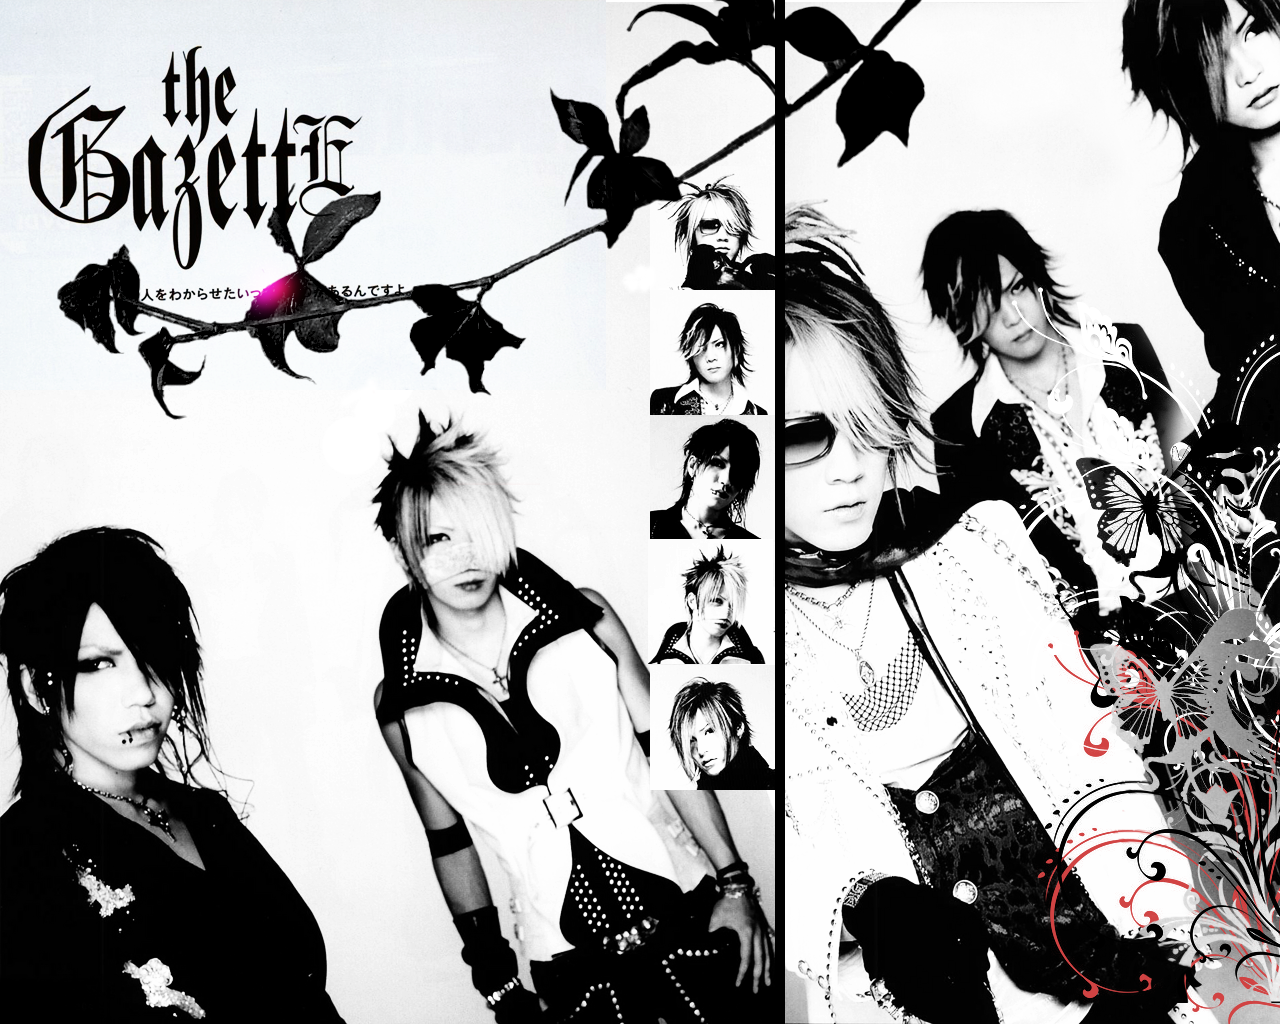 http://images.fanpop.com/images/image_uploads/---------------WALLPAPER-the-gazette-271253_1280_1024.jpg